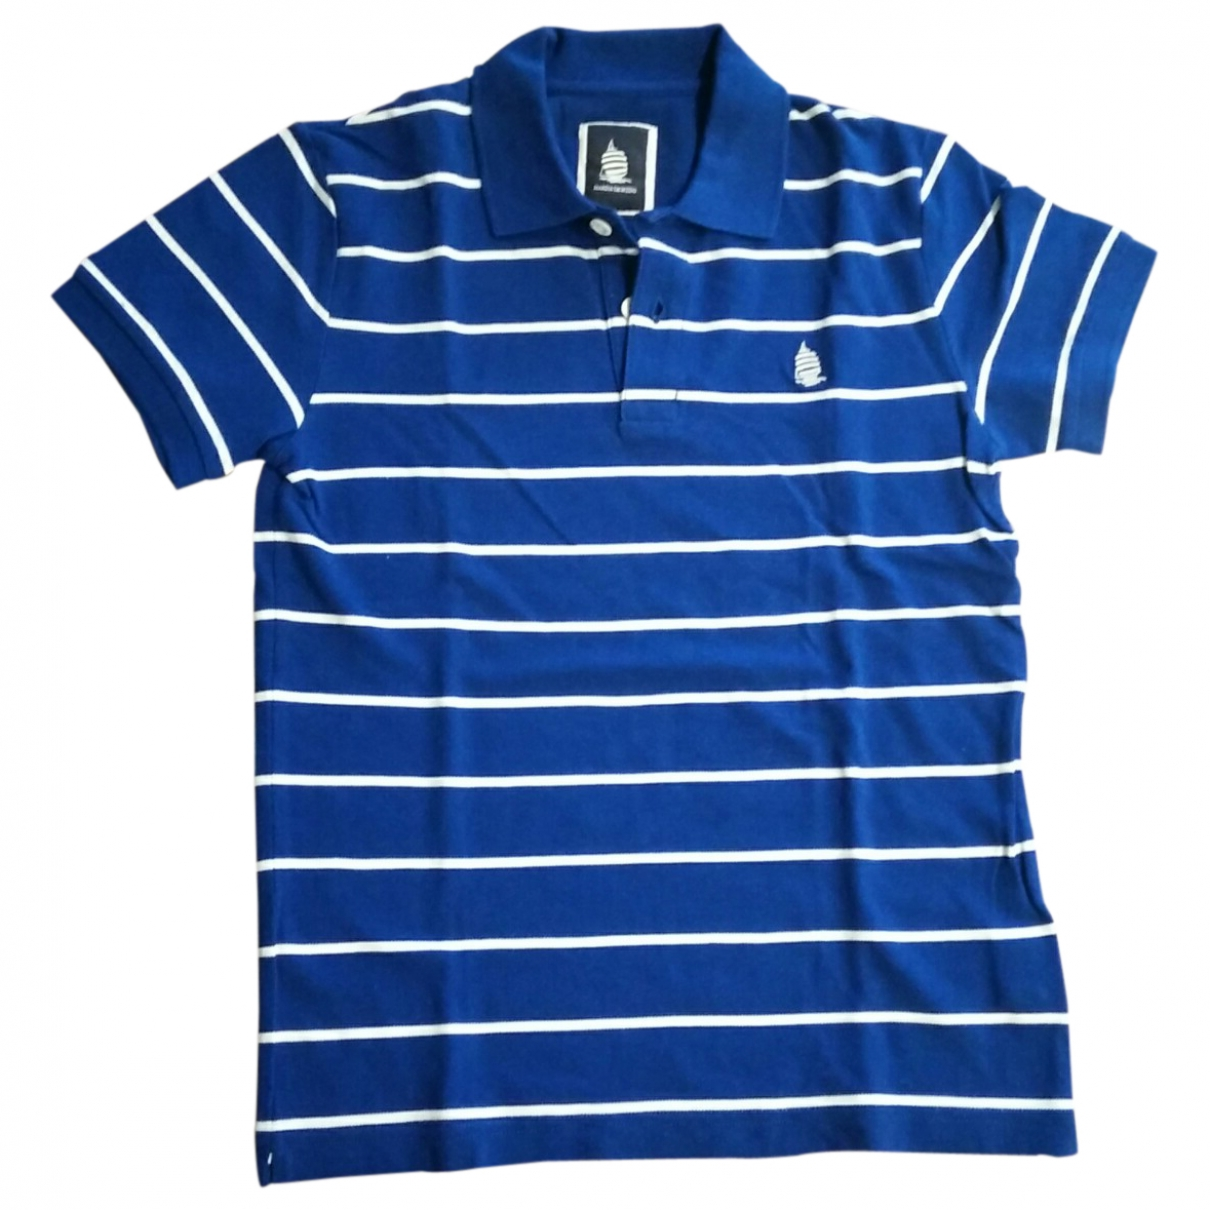 Marina Yachting \N Blue Cotton Polo shirts for Men S International